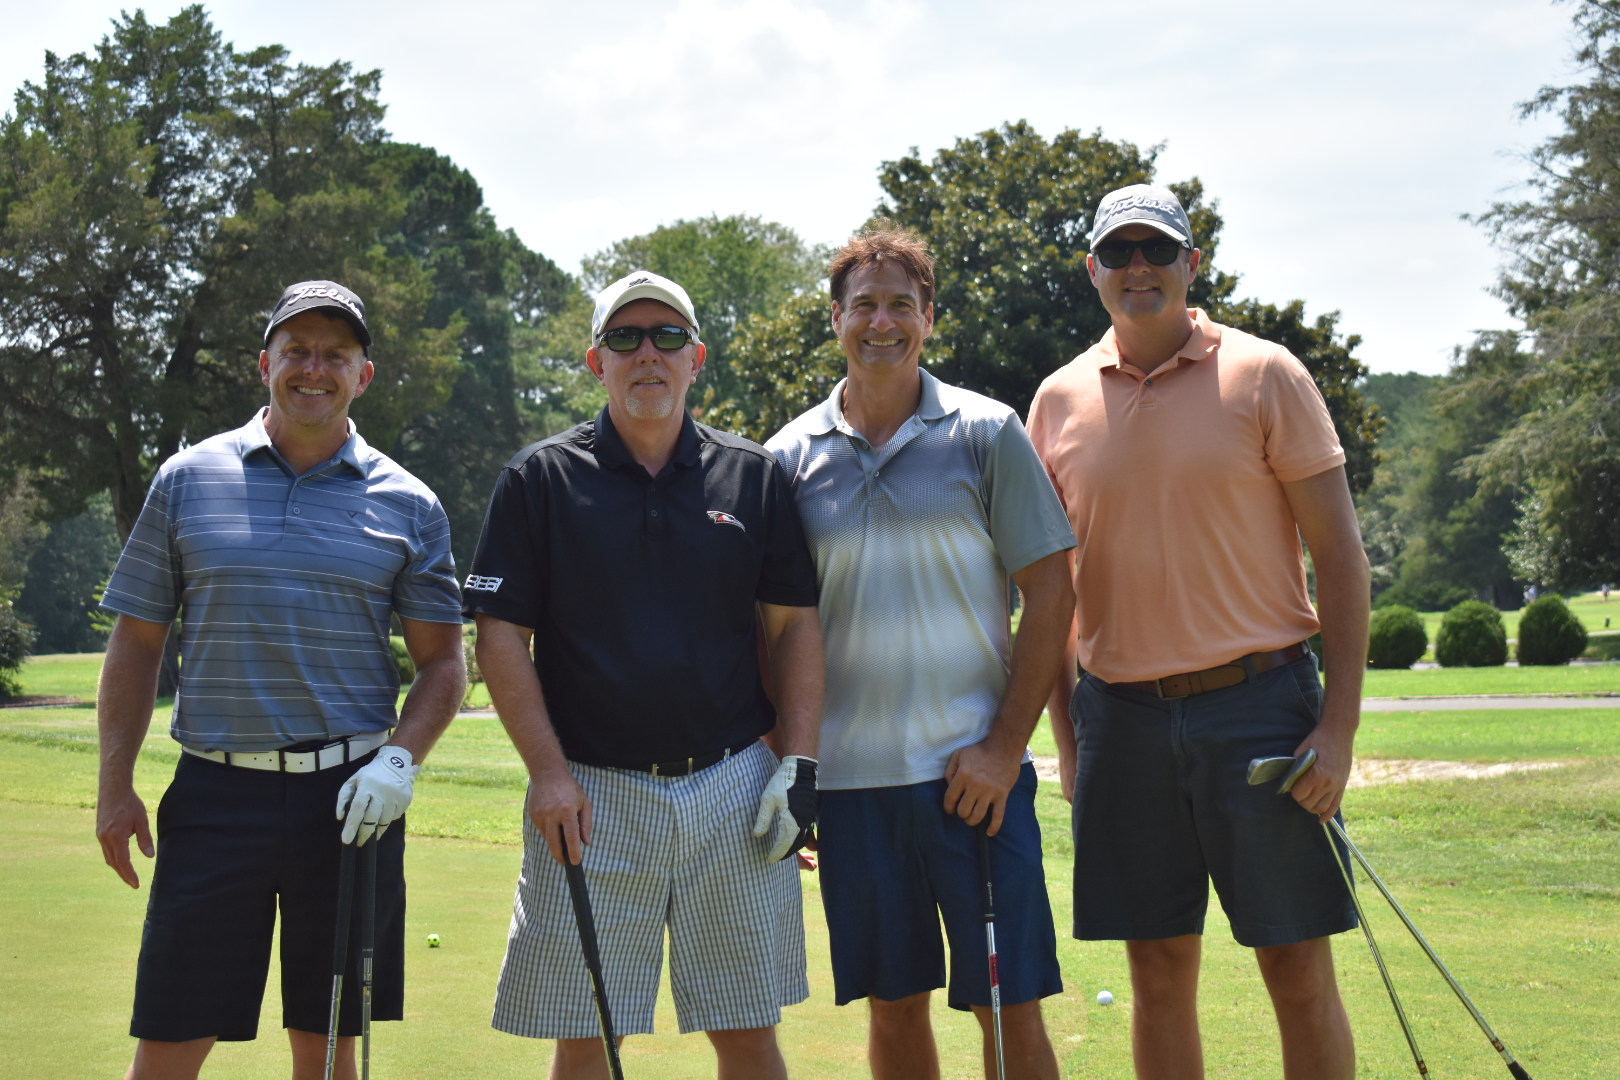 35th Annual Golf Tournament